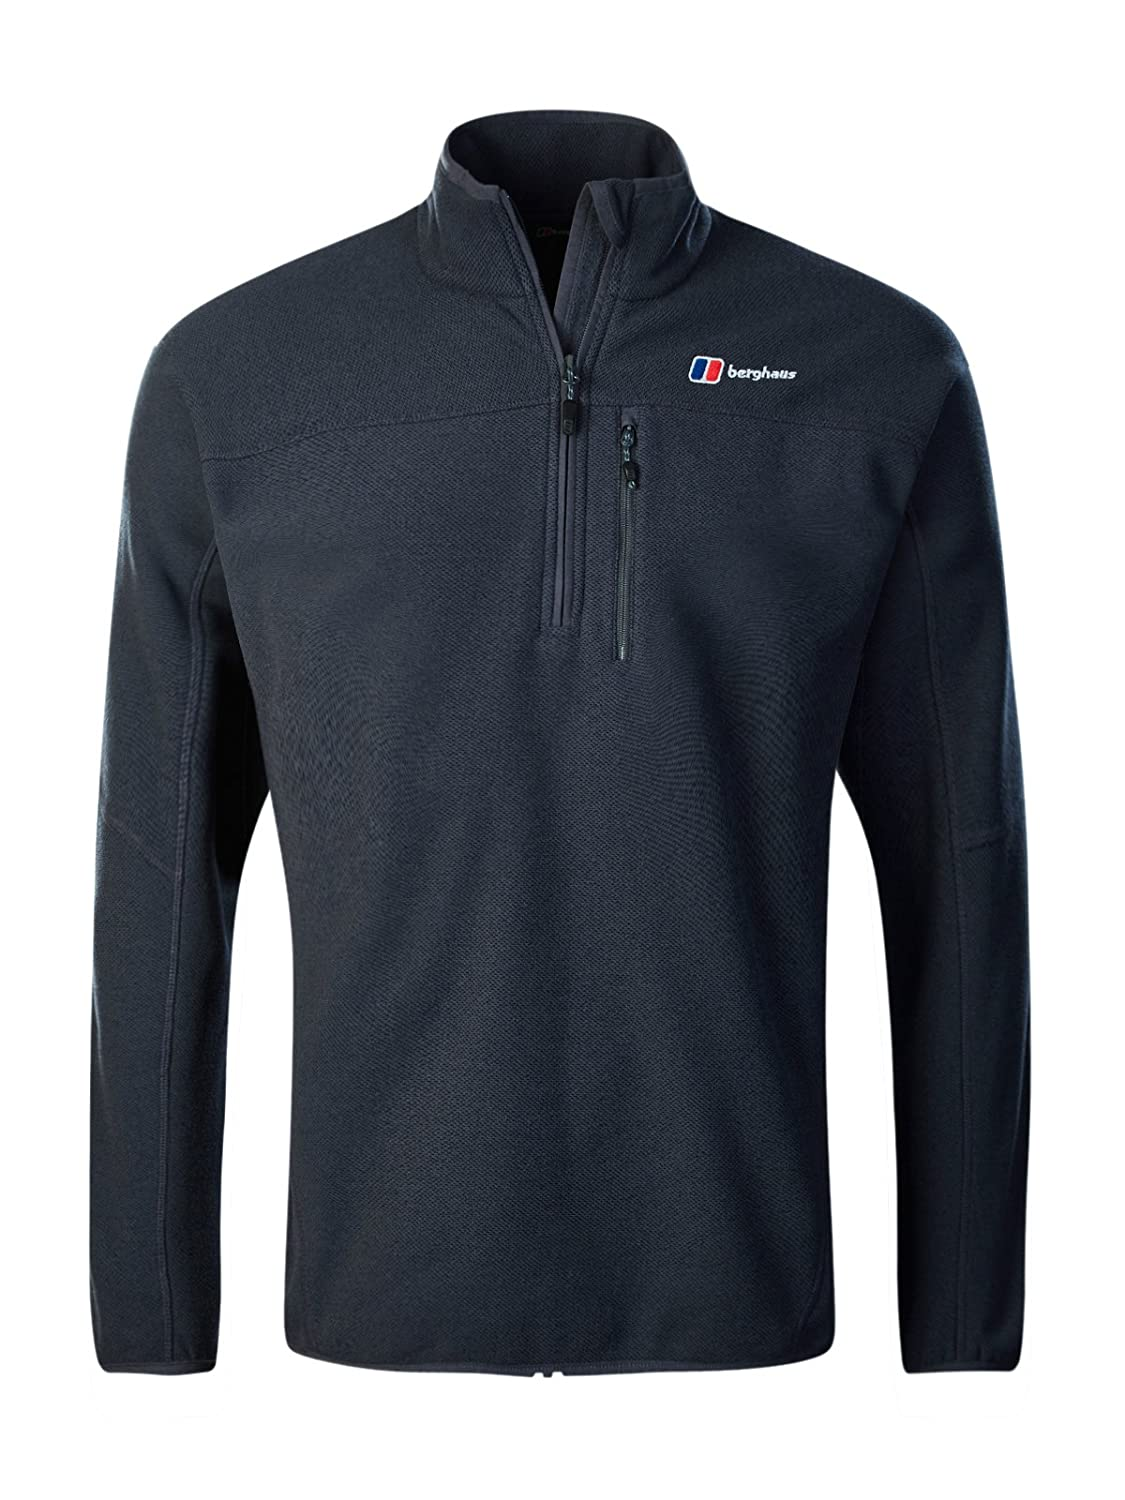 Berghaus Herren William Stainton Half Zip Fleece